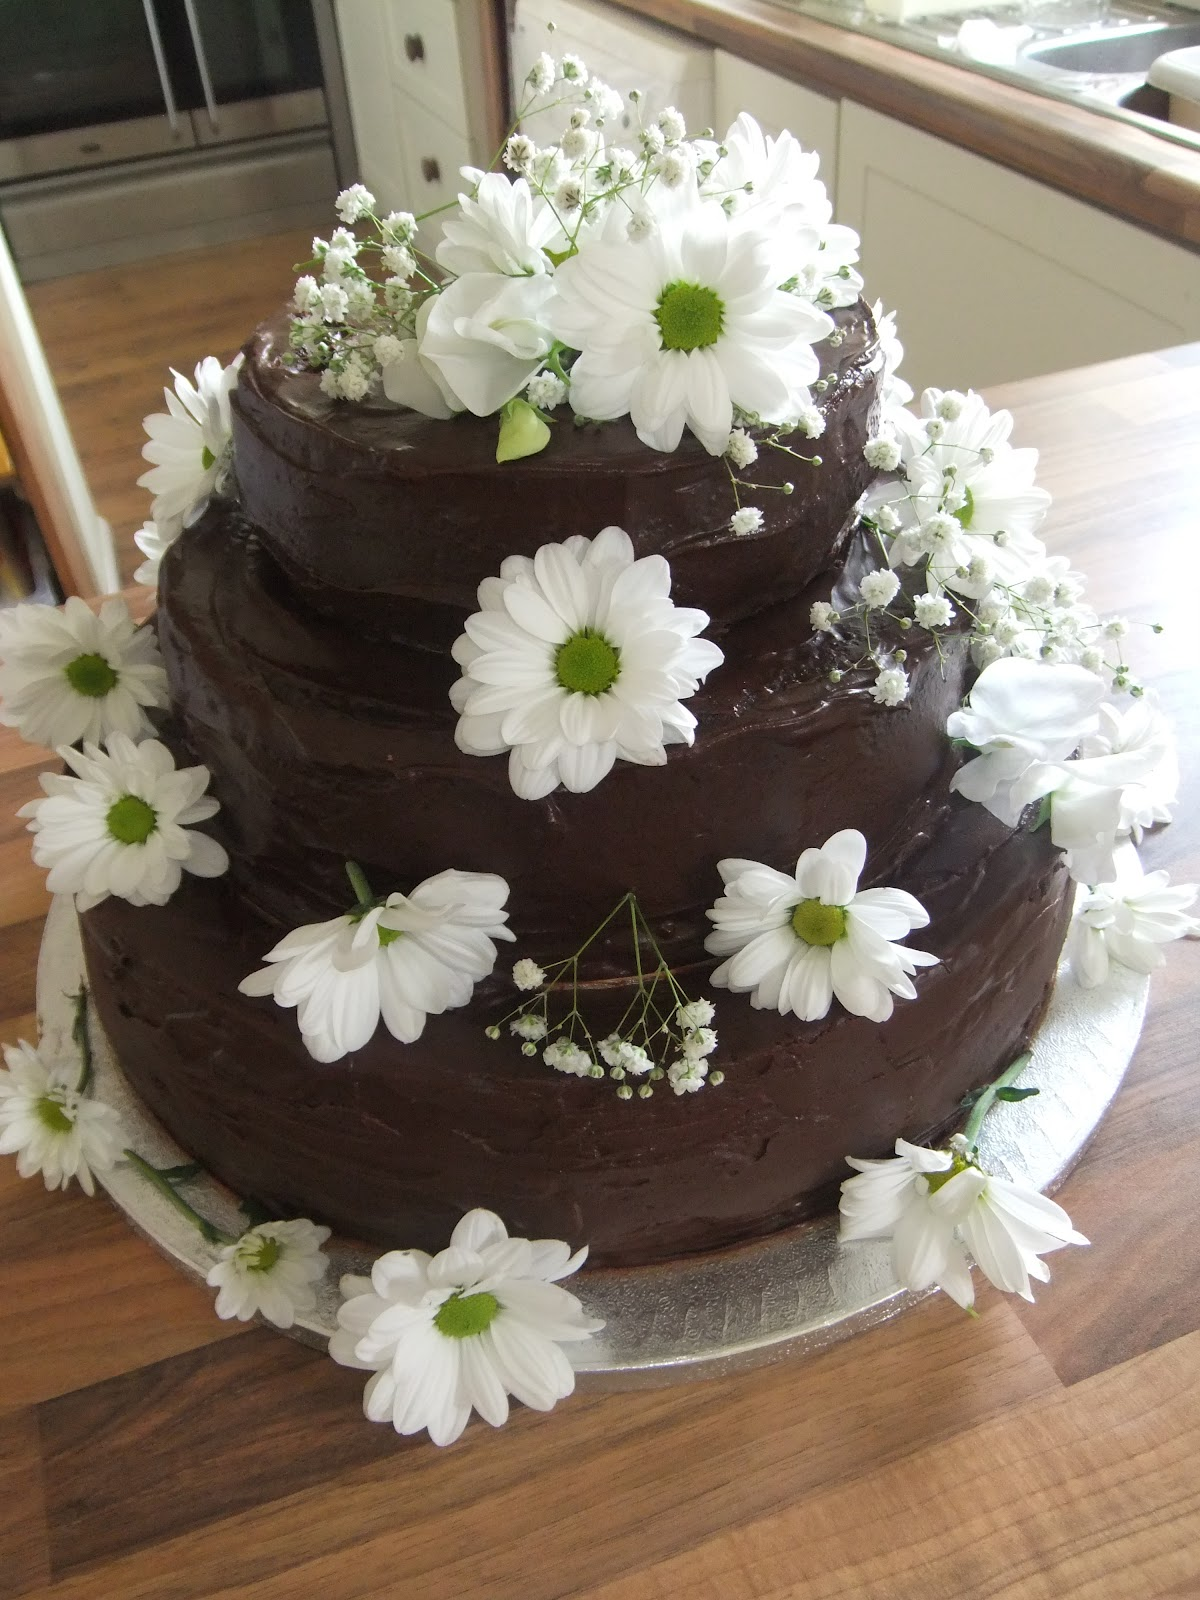 rising to the berry american chocolate wedding cake. Black Bedroom Furniture Sets. Home Design Ideas